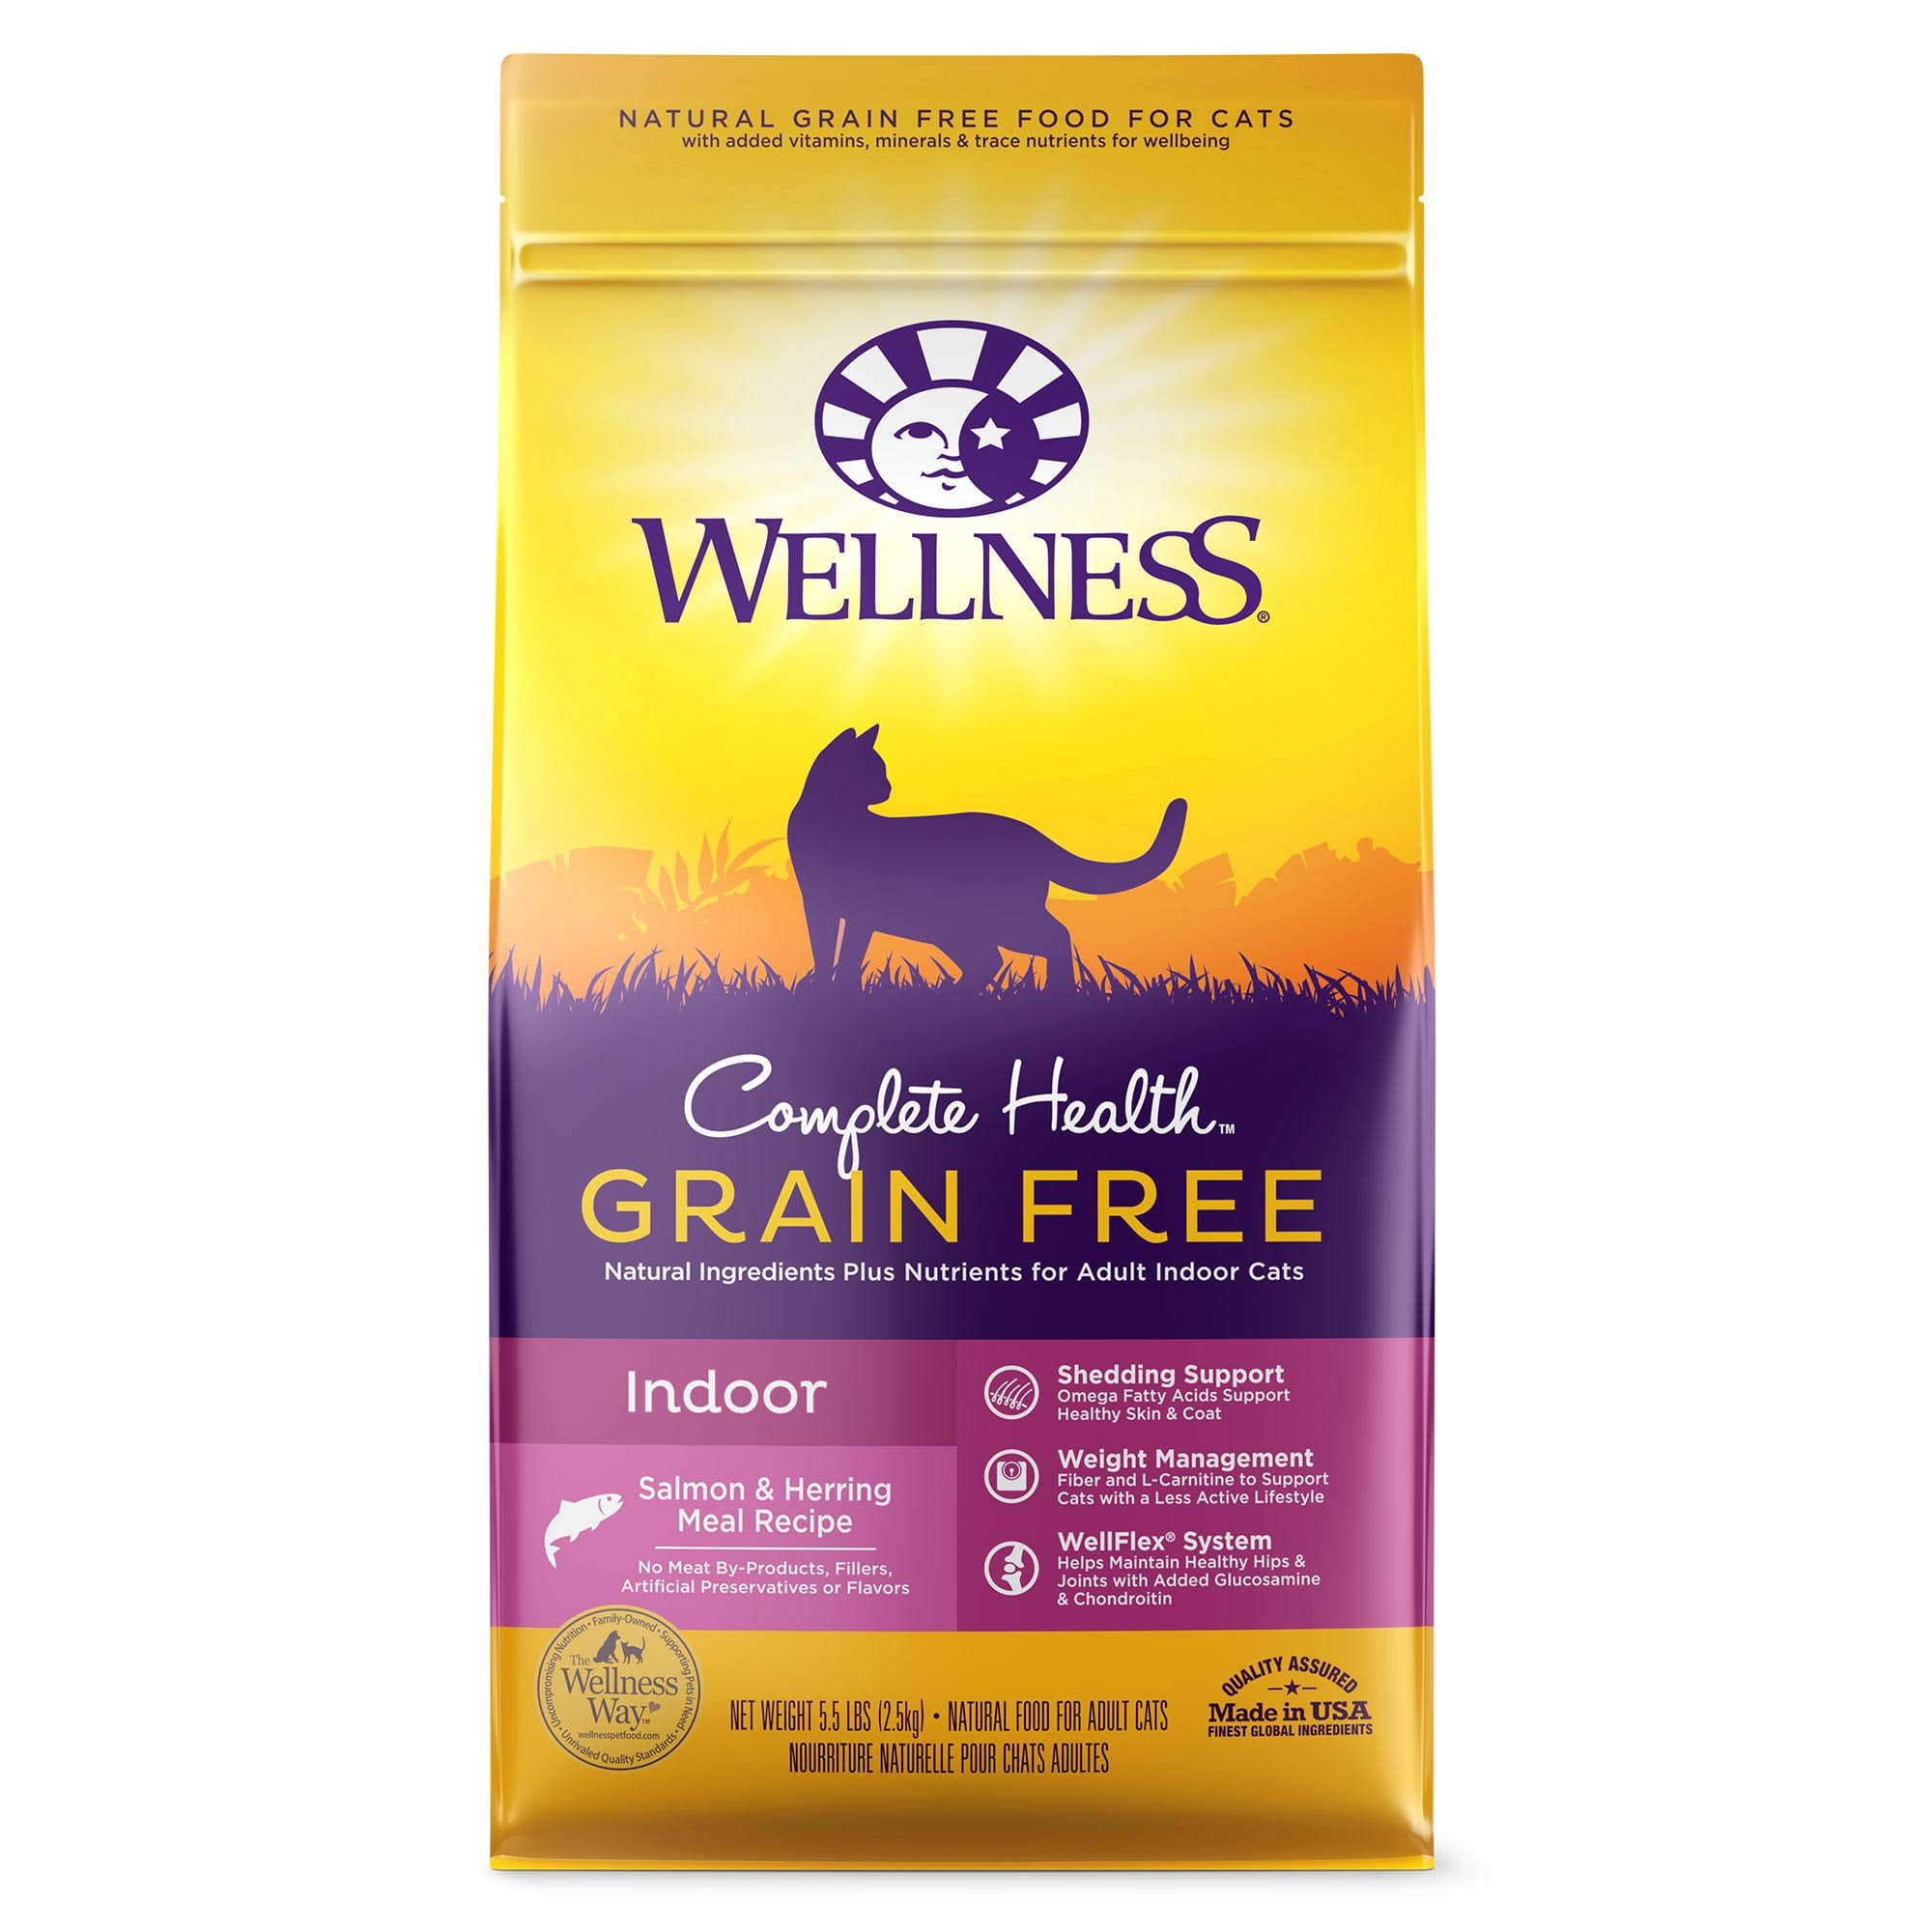 Wellness Complete Health Natural Grain Free Indoor, Salmon & Herring Dry Cat Food, 5.5-Pound Bag